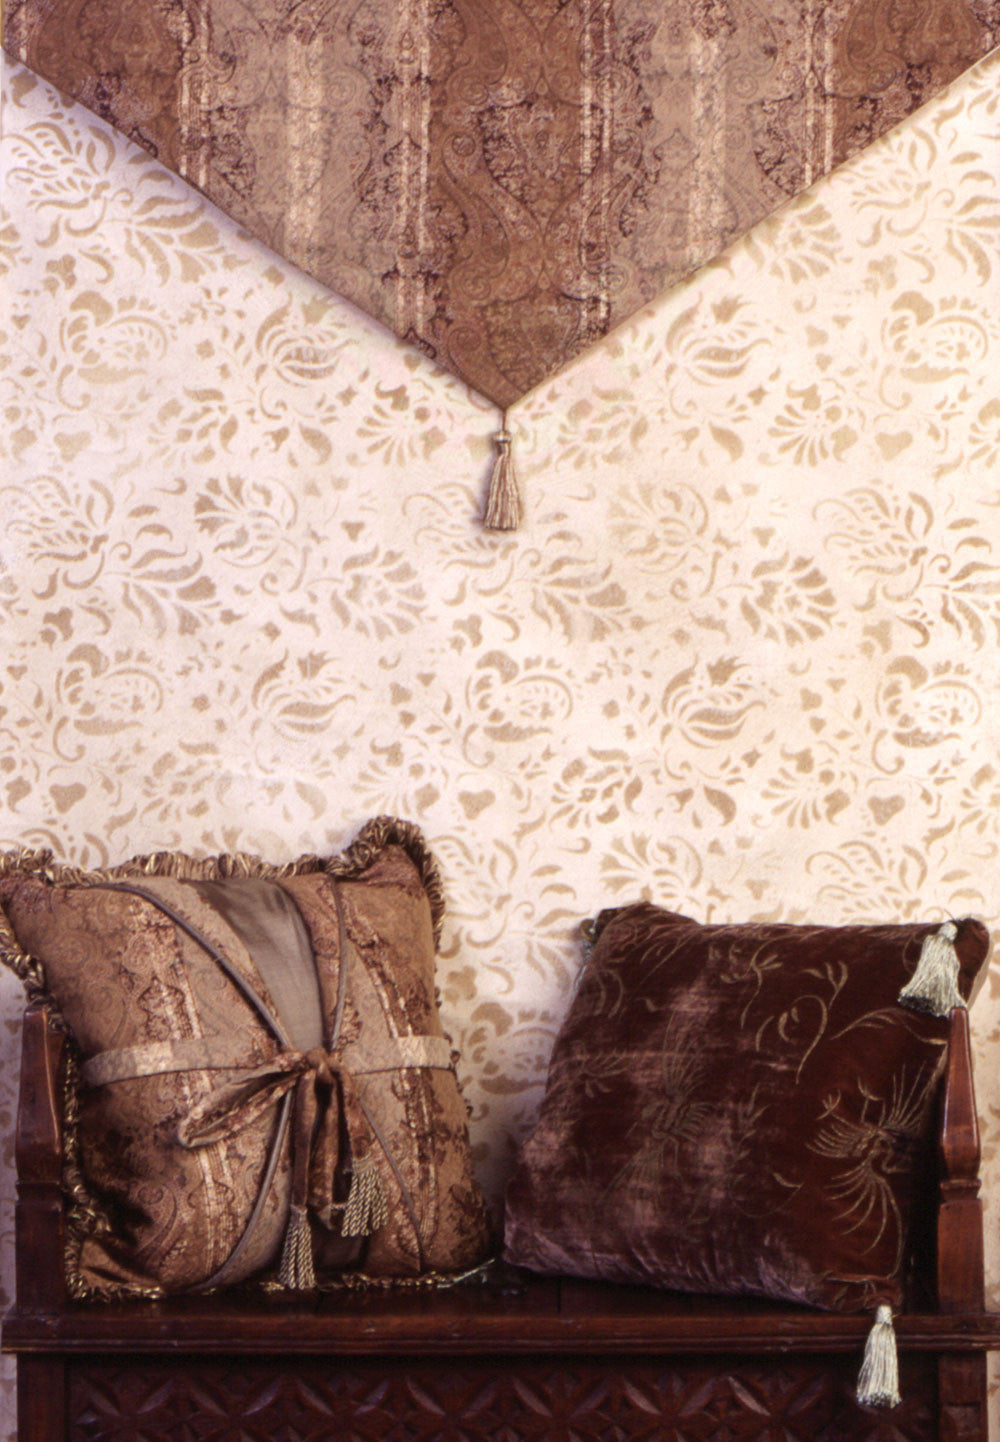 Wall stencils large allover brocade stencil royal design paint a floral pattern in your home allover brocade flowers wall stencils for stenciled bedroom amipublicfo Gallery